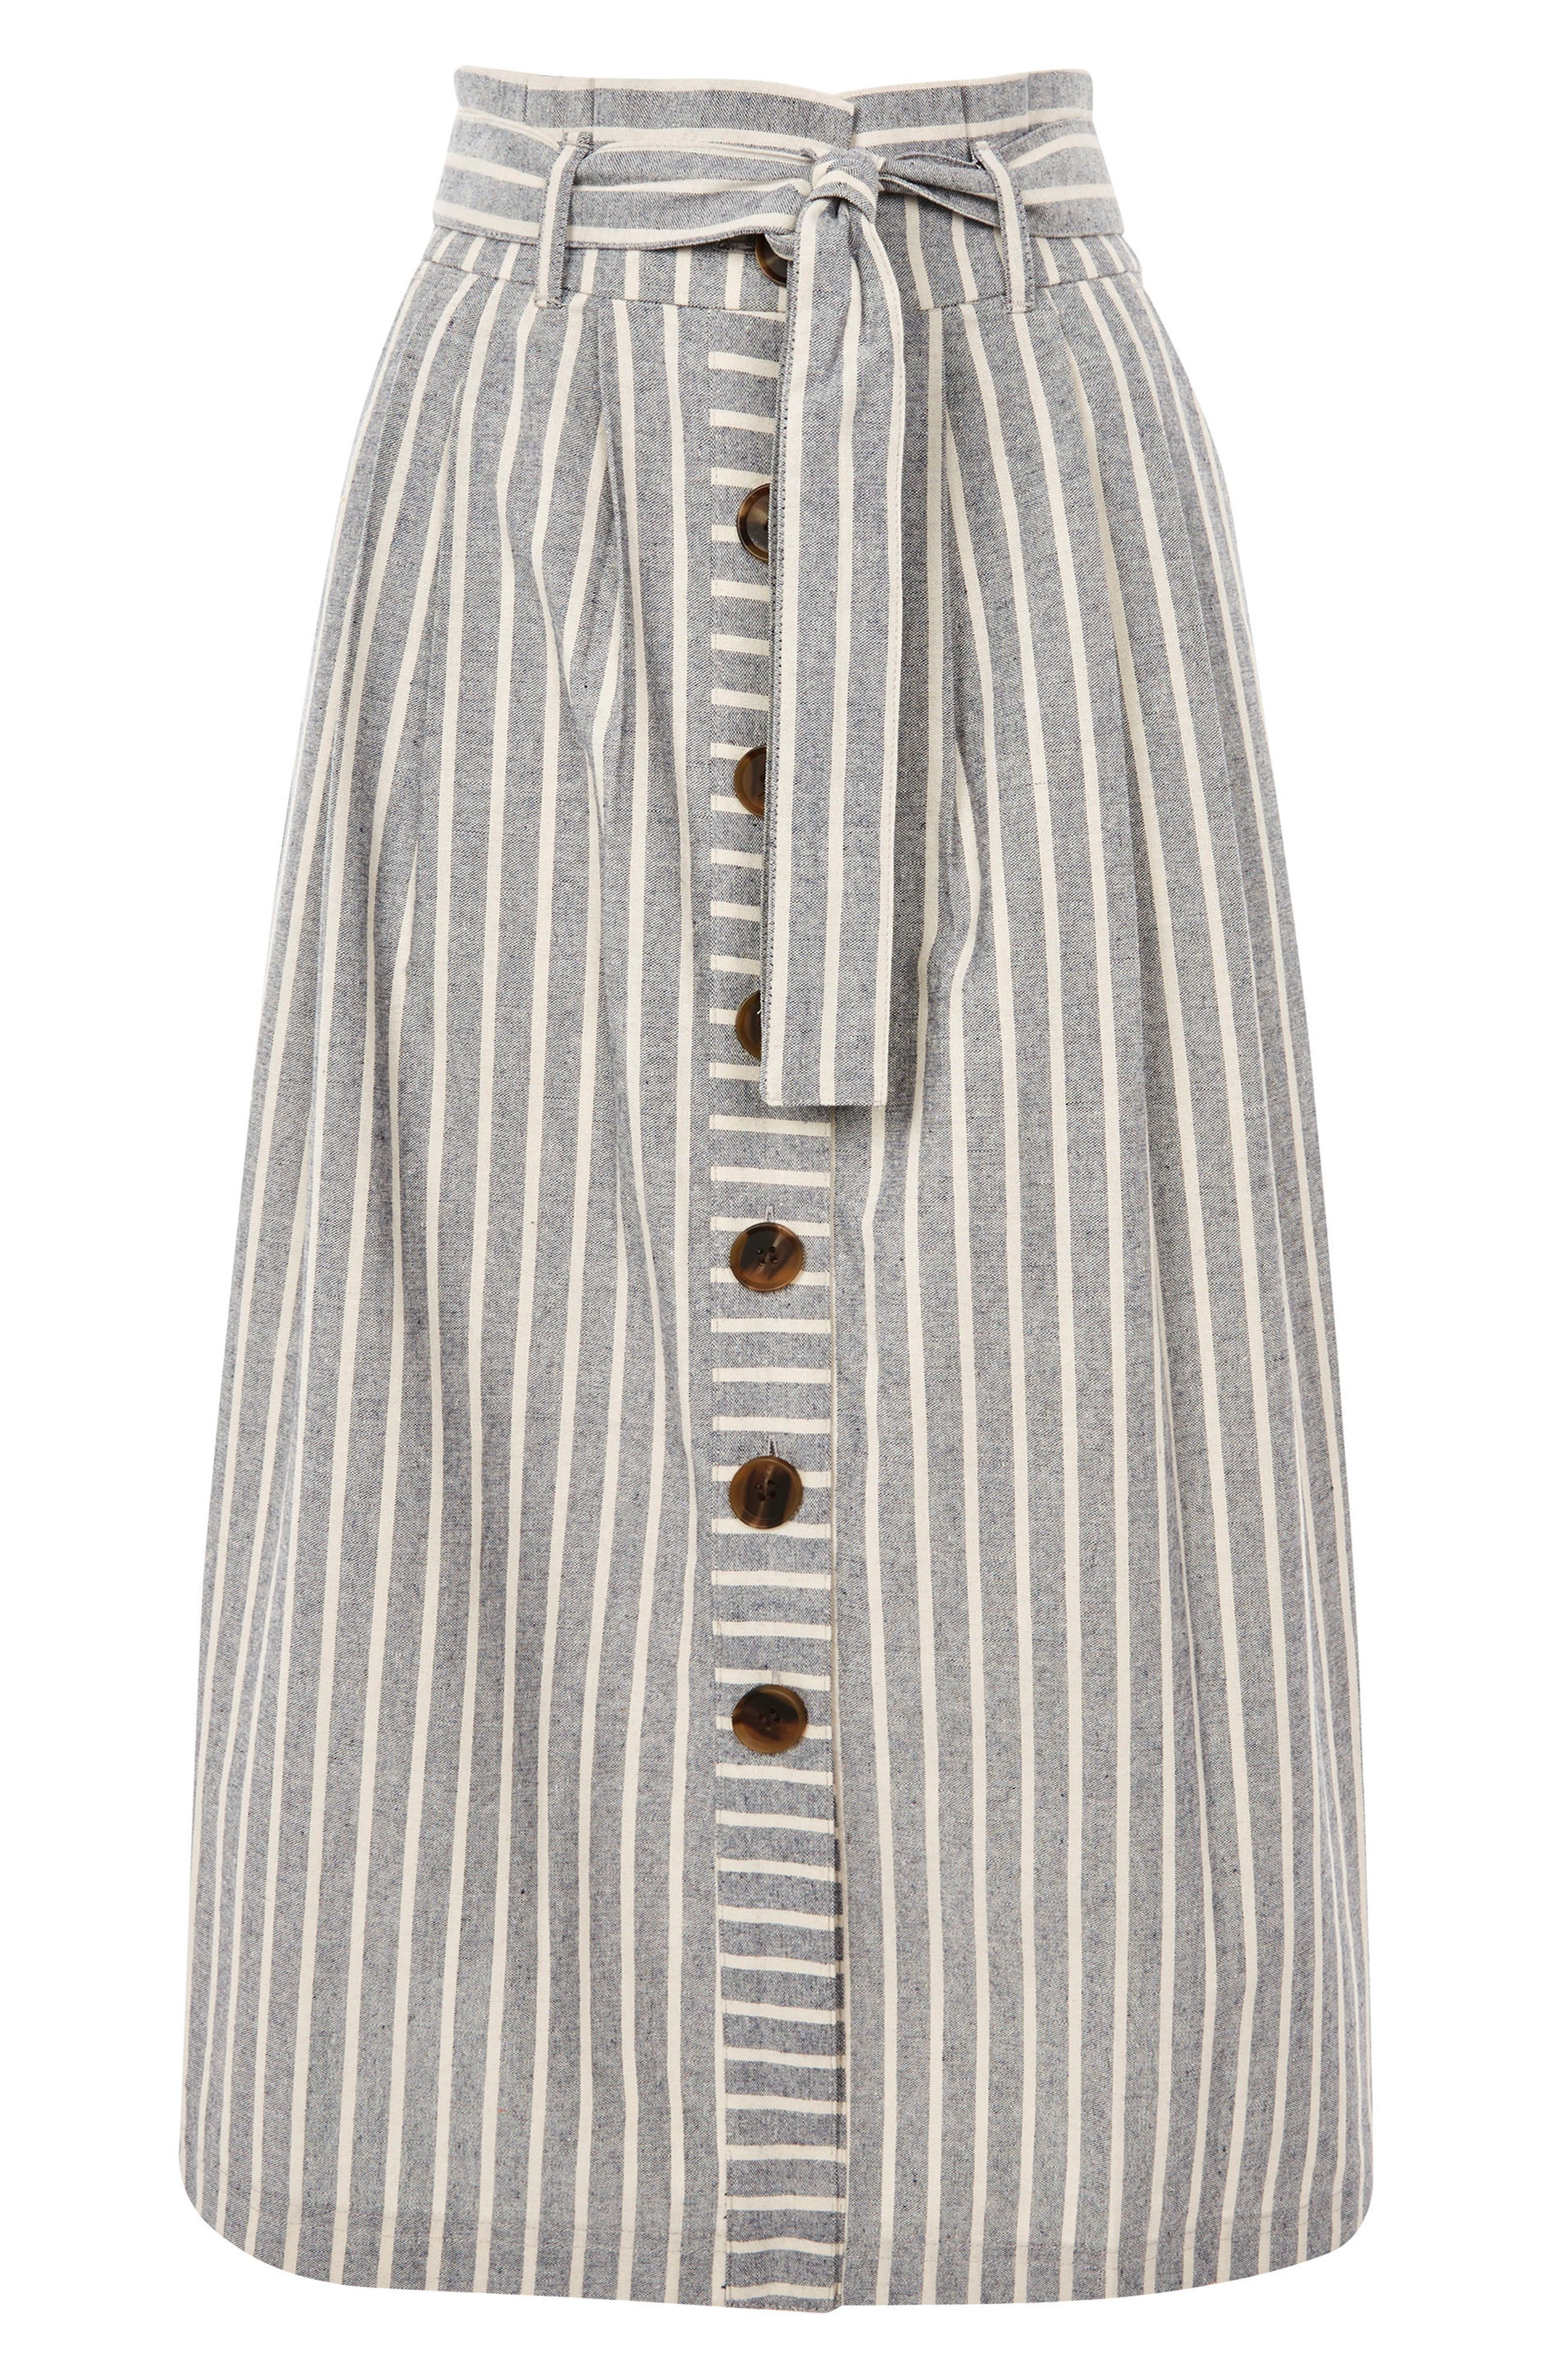 Stripe Tie Waist Midi Skirt,                             Alternate thumbnail 4, color,                             Grey Multi